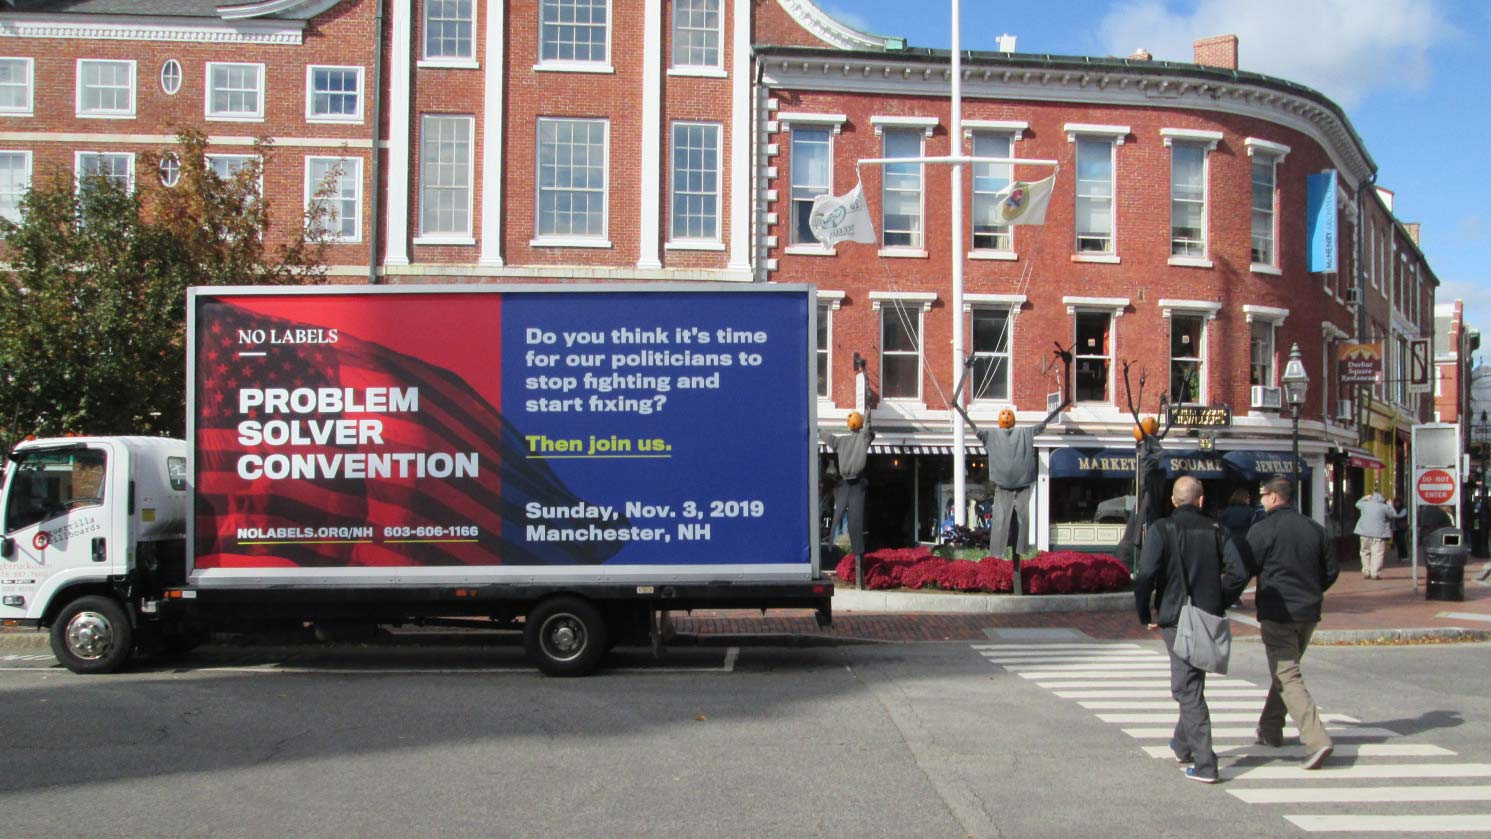 Mobile billboard truck in Market Square, Portsmouth NH